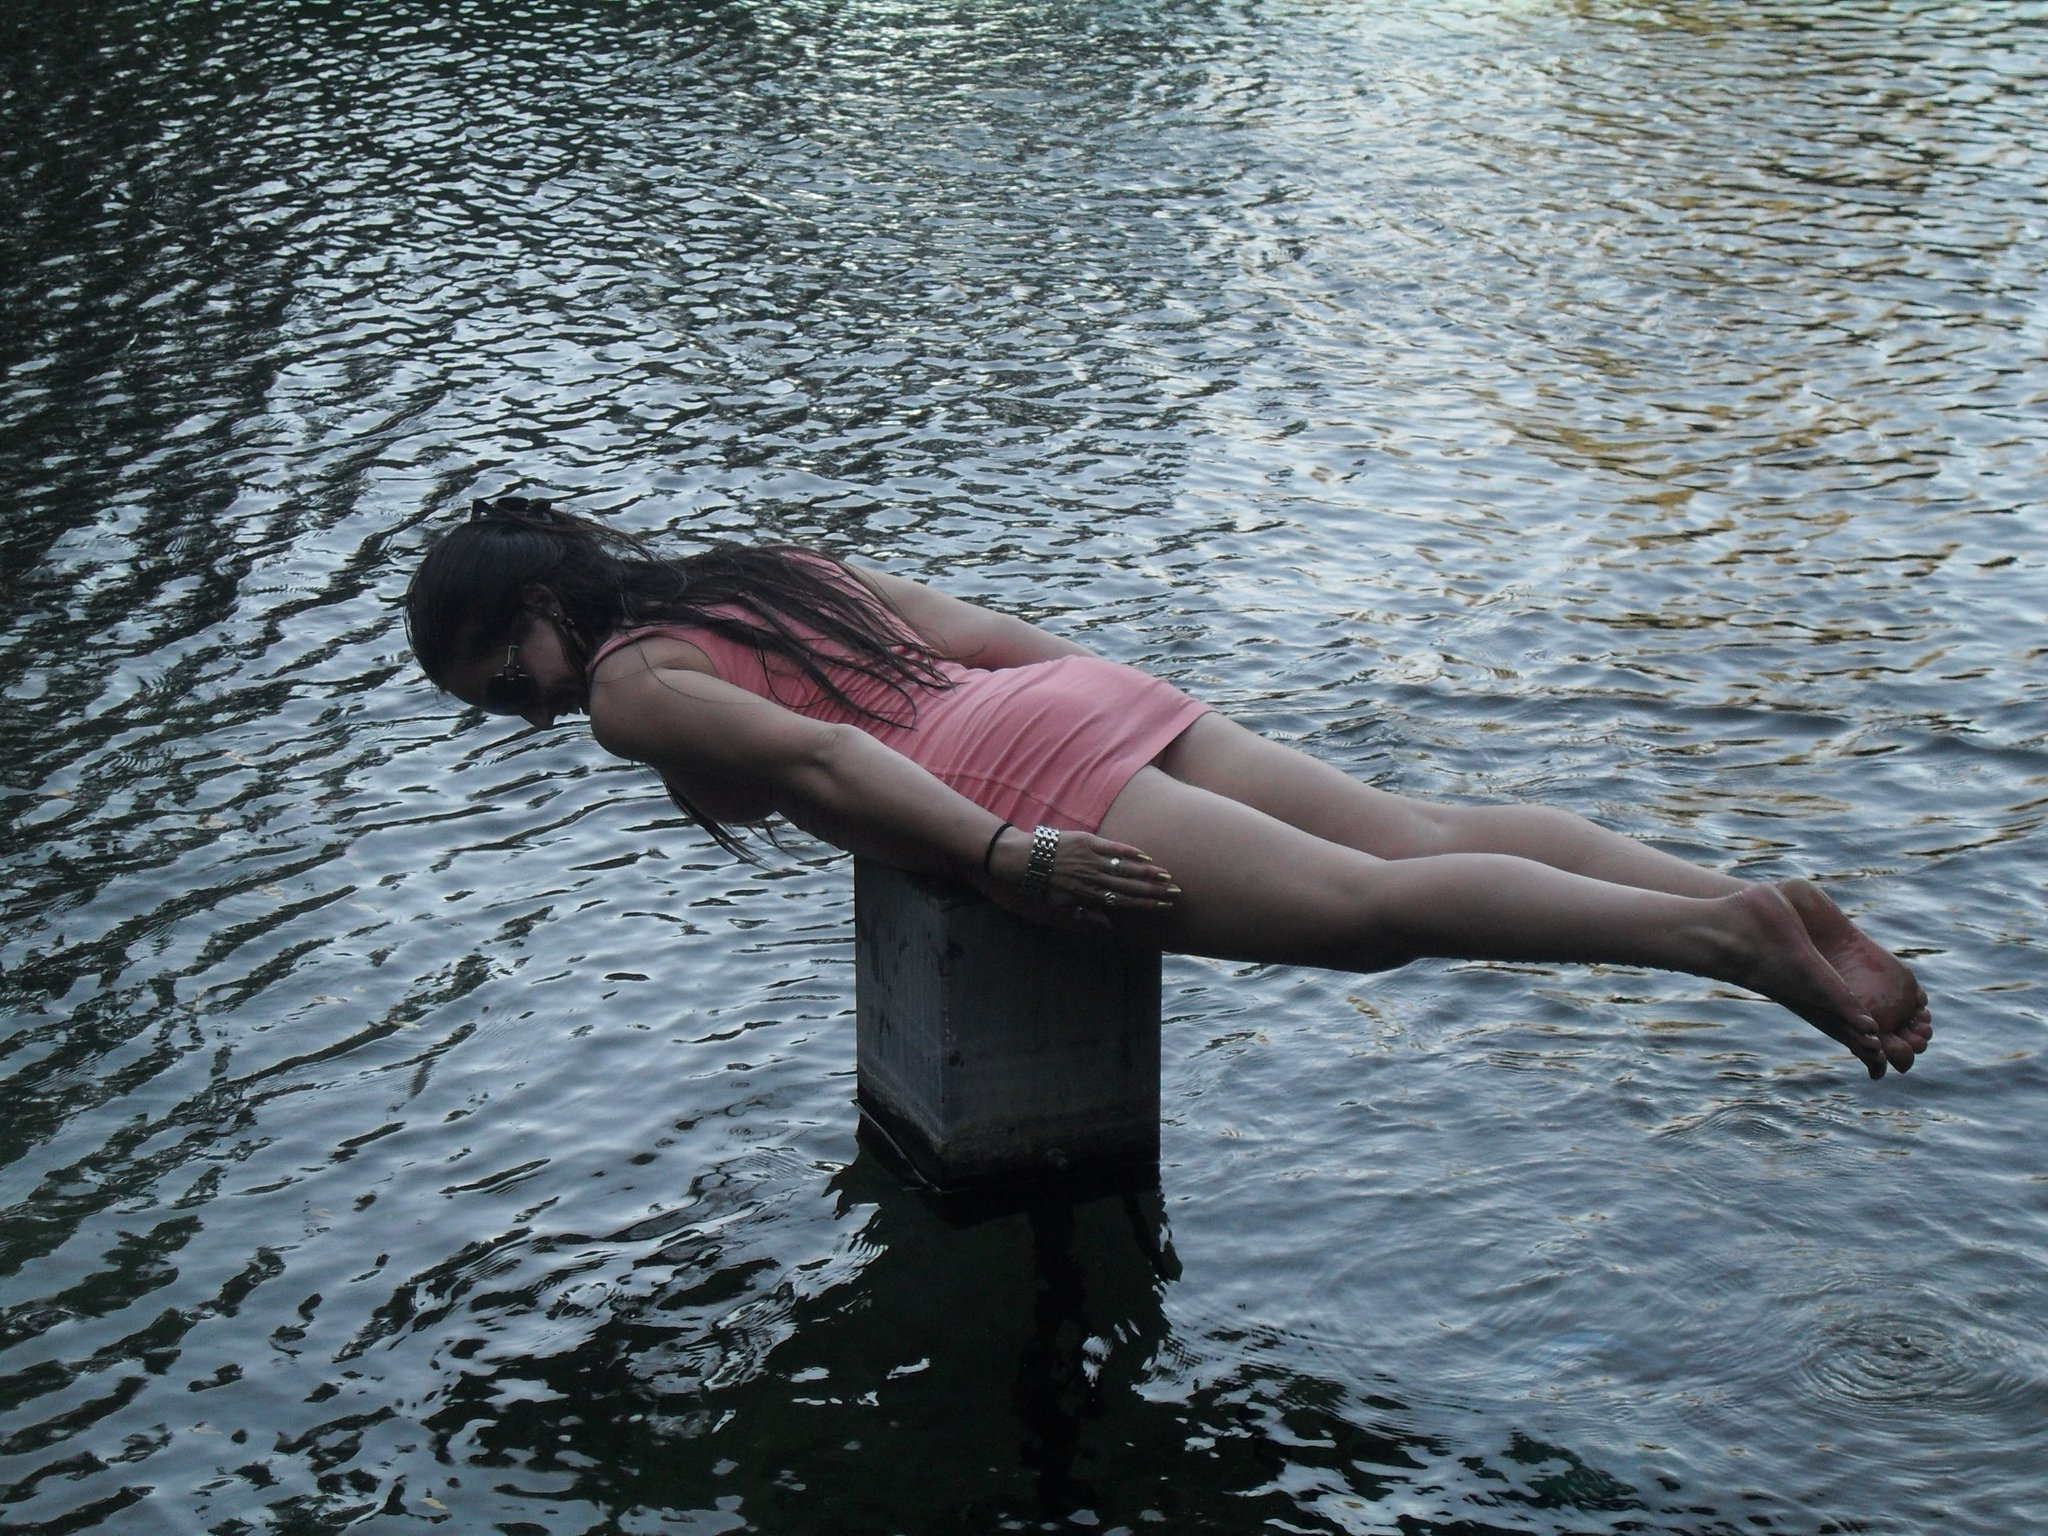 Nude planking photos online an offence in Thailand